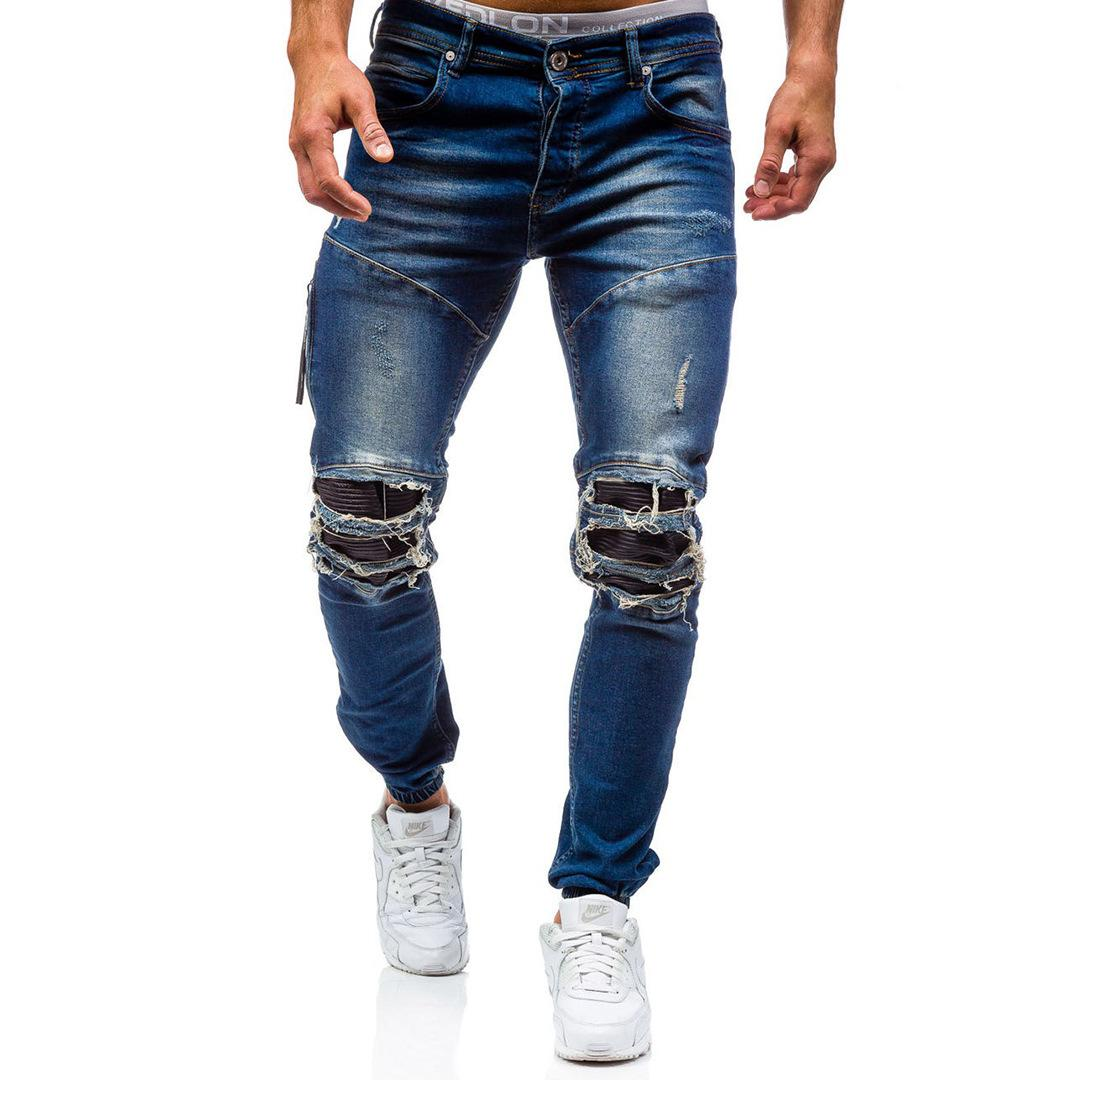 fast color best sneakers wide range 2019 Dark Blue Skinny Ripped Jeans For Men Big Hole Distressed Repaired  Tight Pant Slim Fit Stretch Dark Washed Jeans From Xunmi, $30.46 |  DHgate.Com